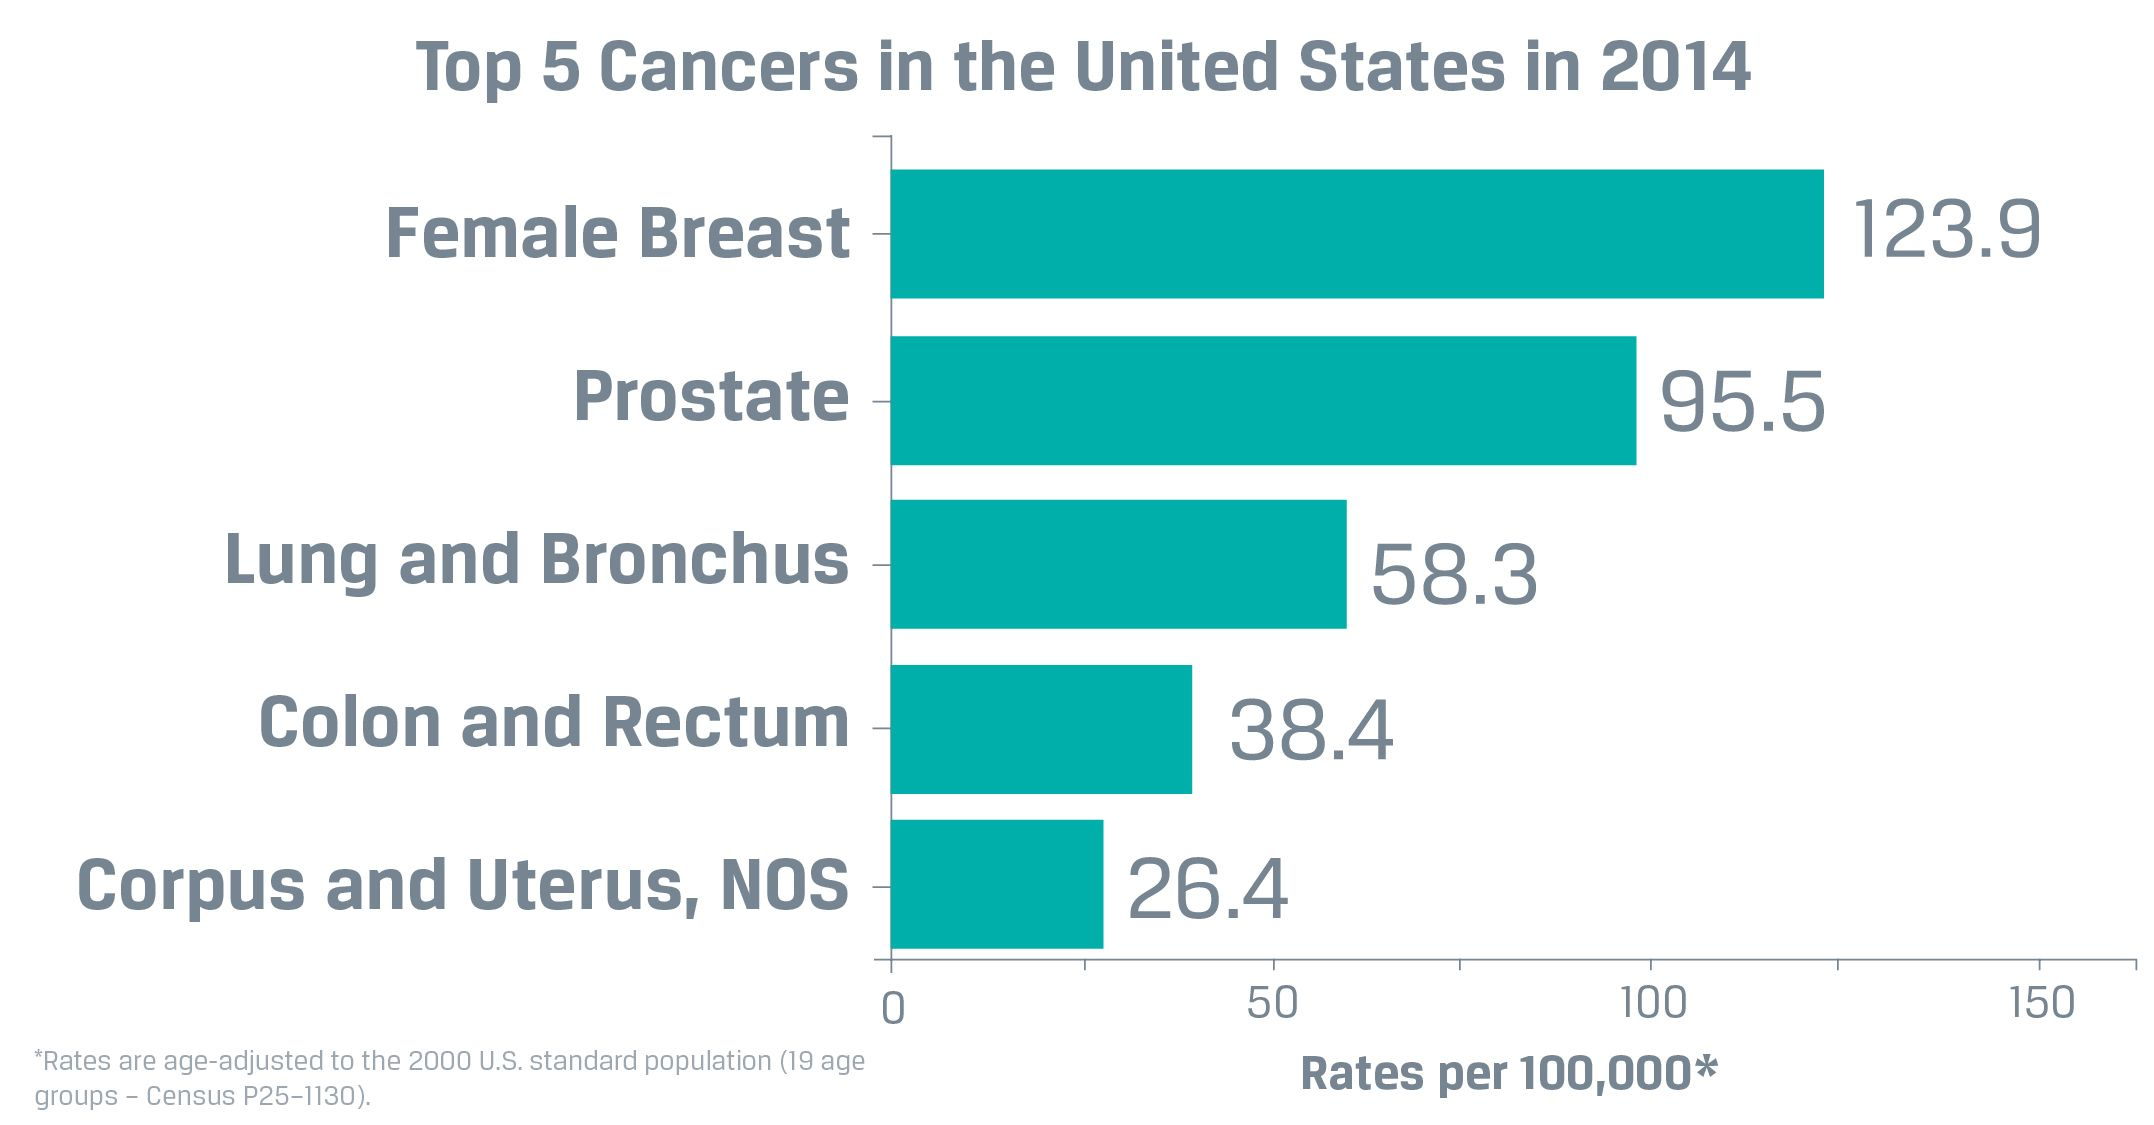 Top 5 Cancers int he US in 2014